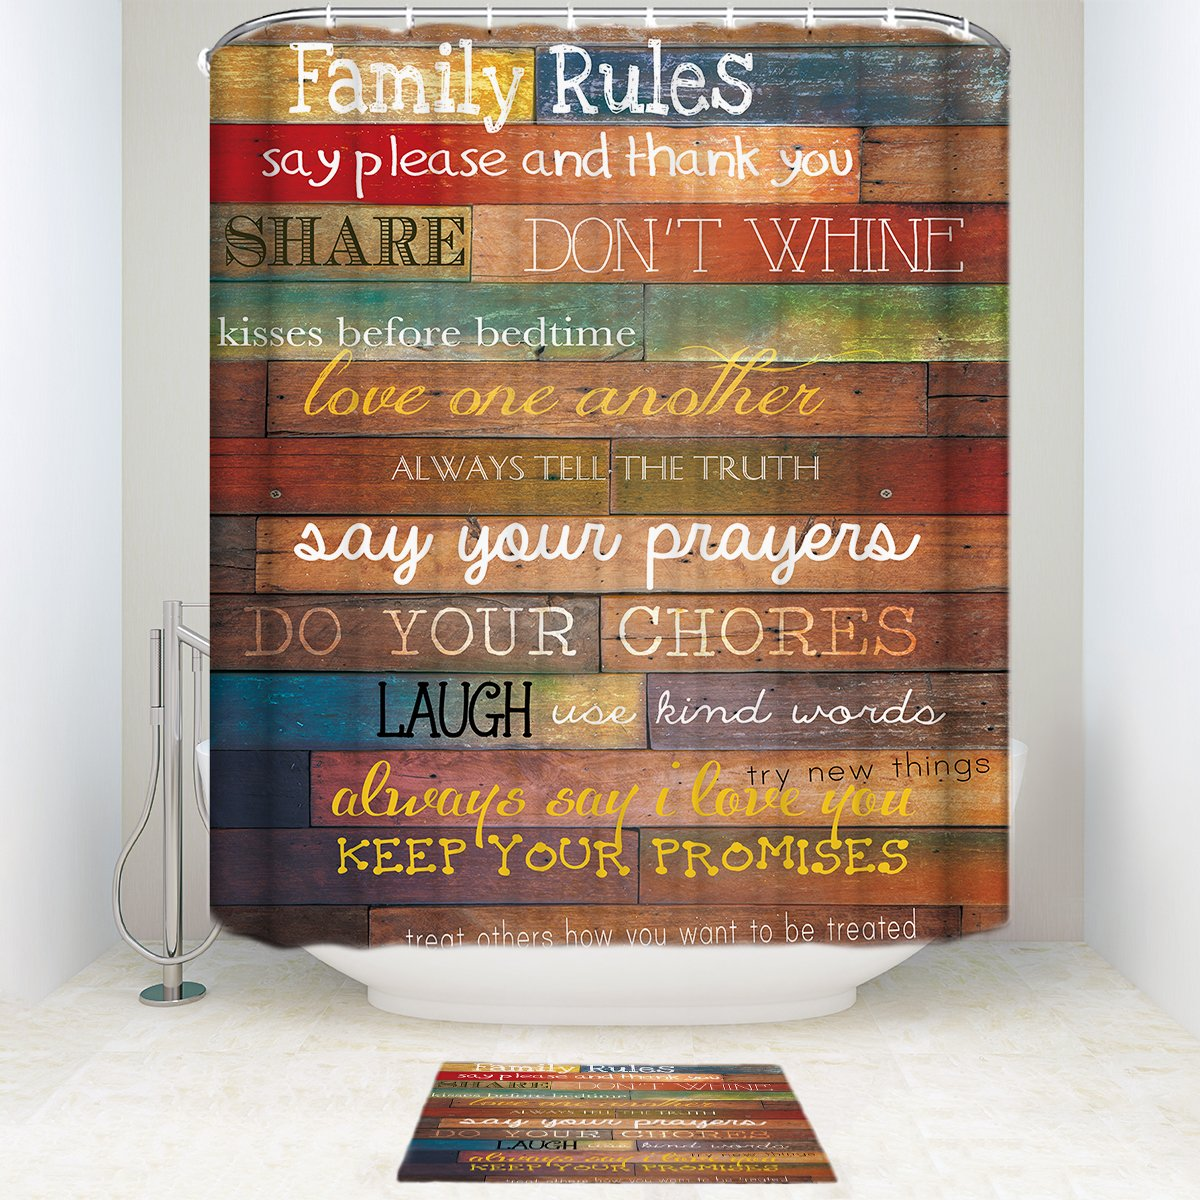 SUN-Shine Family Rules Rustic Wood Bathroom Shower Curtain Sets With Mats Rugs And Accessory